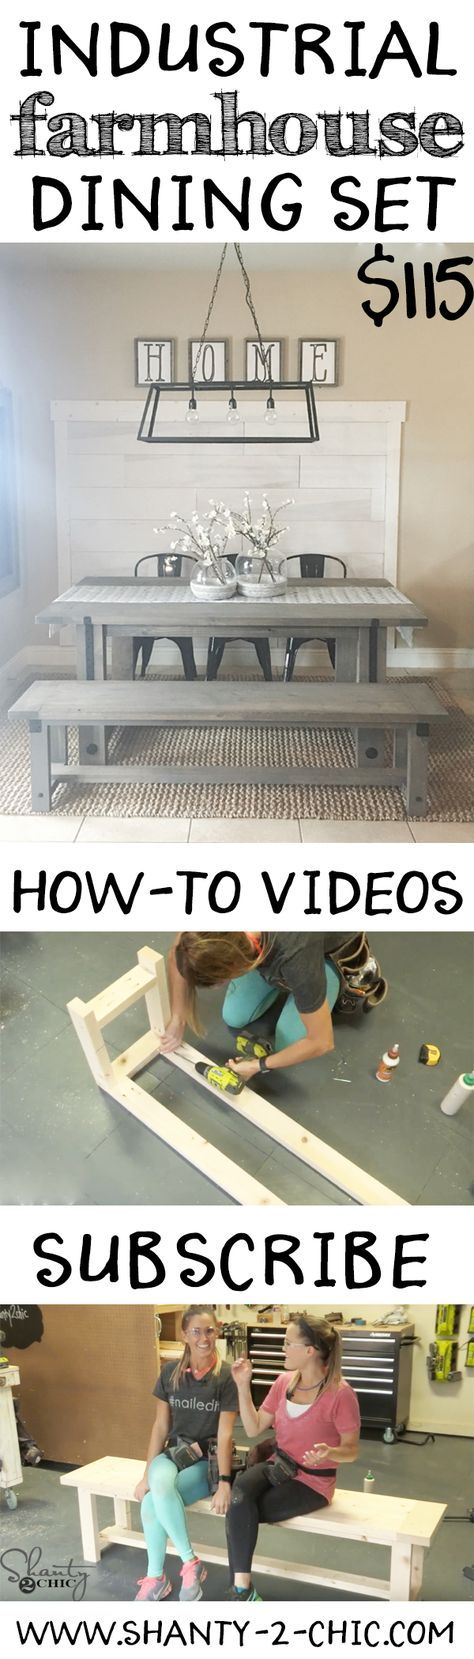 Build your own Industrial Farmhouse Dining set for only $115 in lumber with free plans and a how-to video! This entire dining area is DIY!!